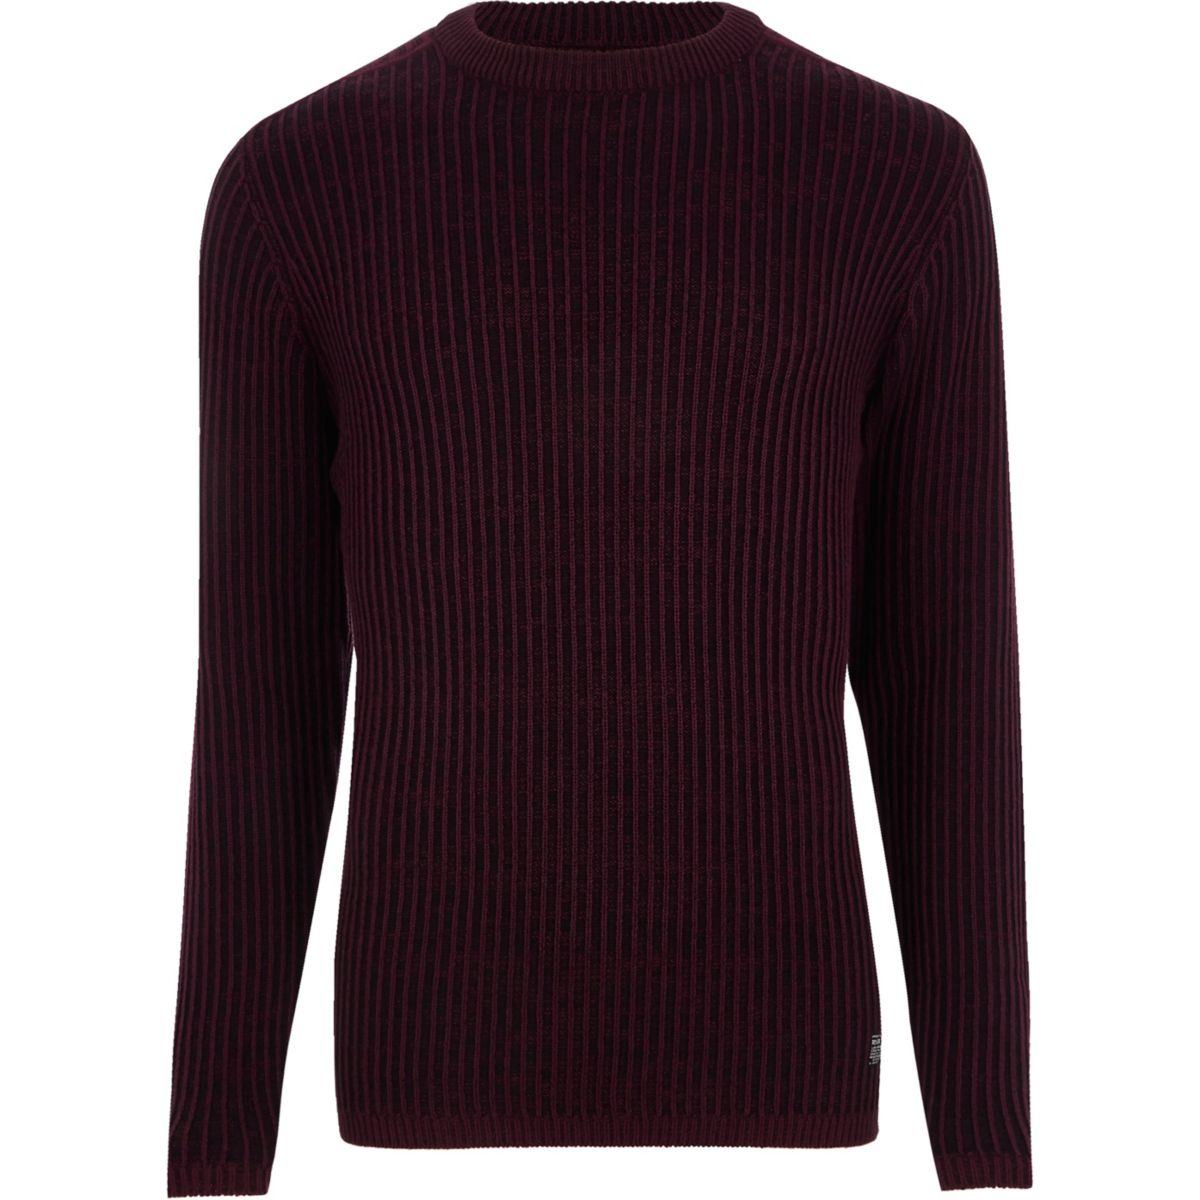 Burgundy ribbed muscle fit knit sweater